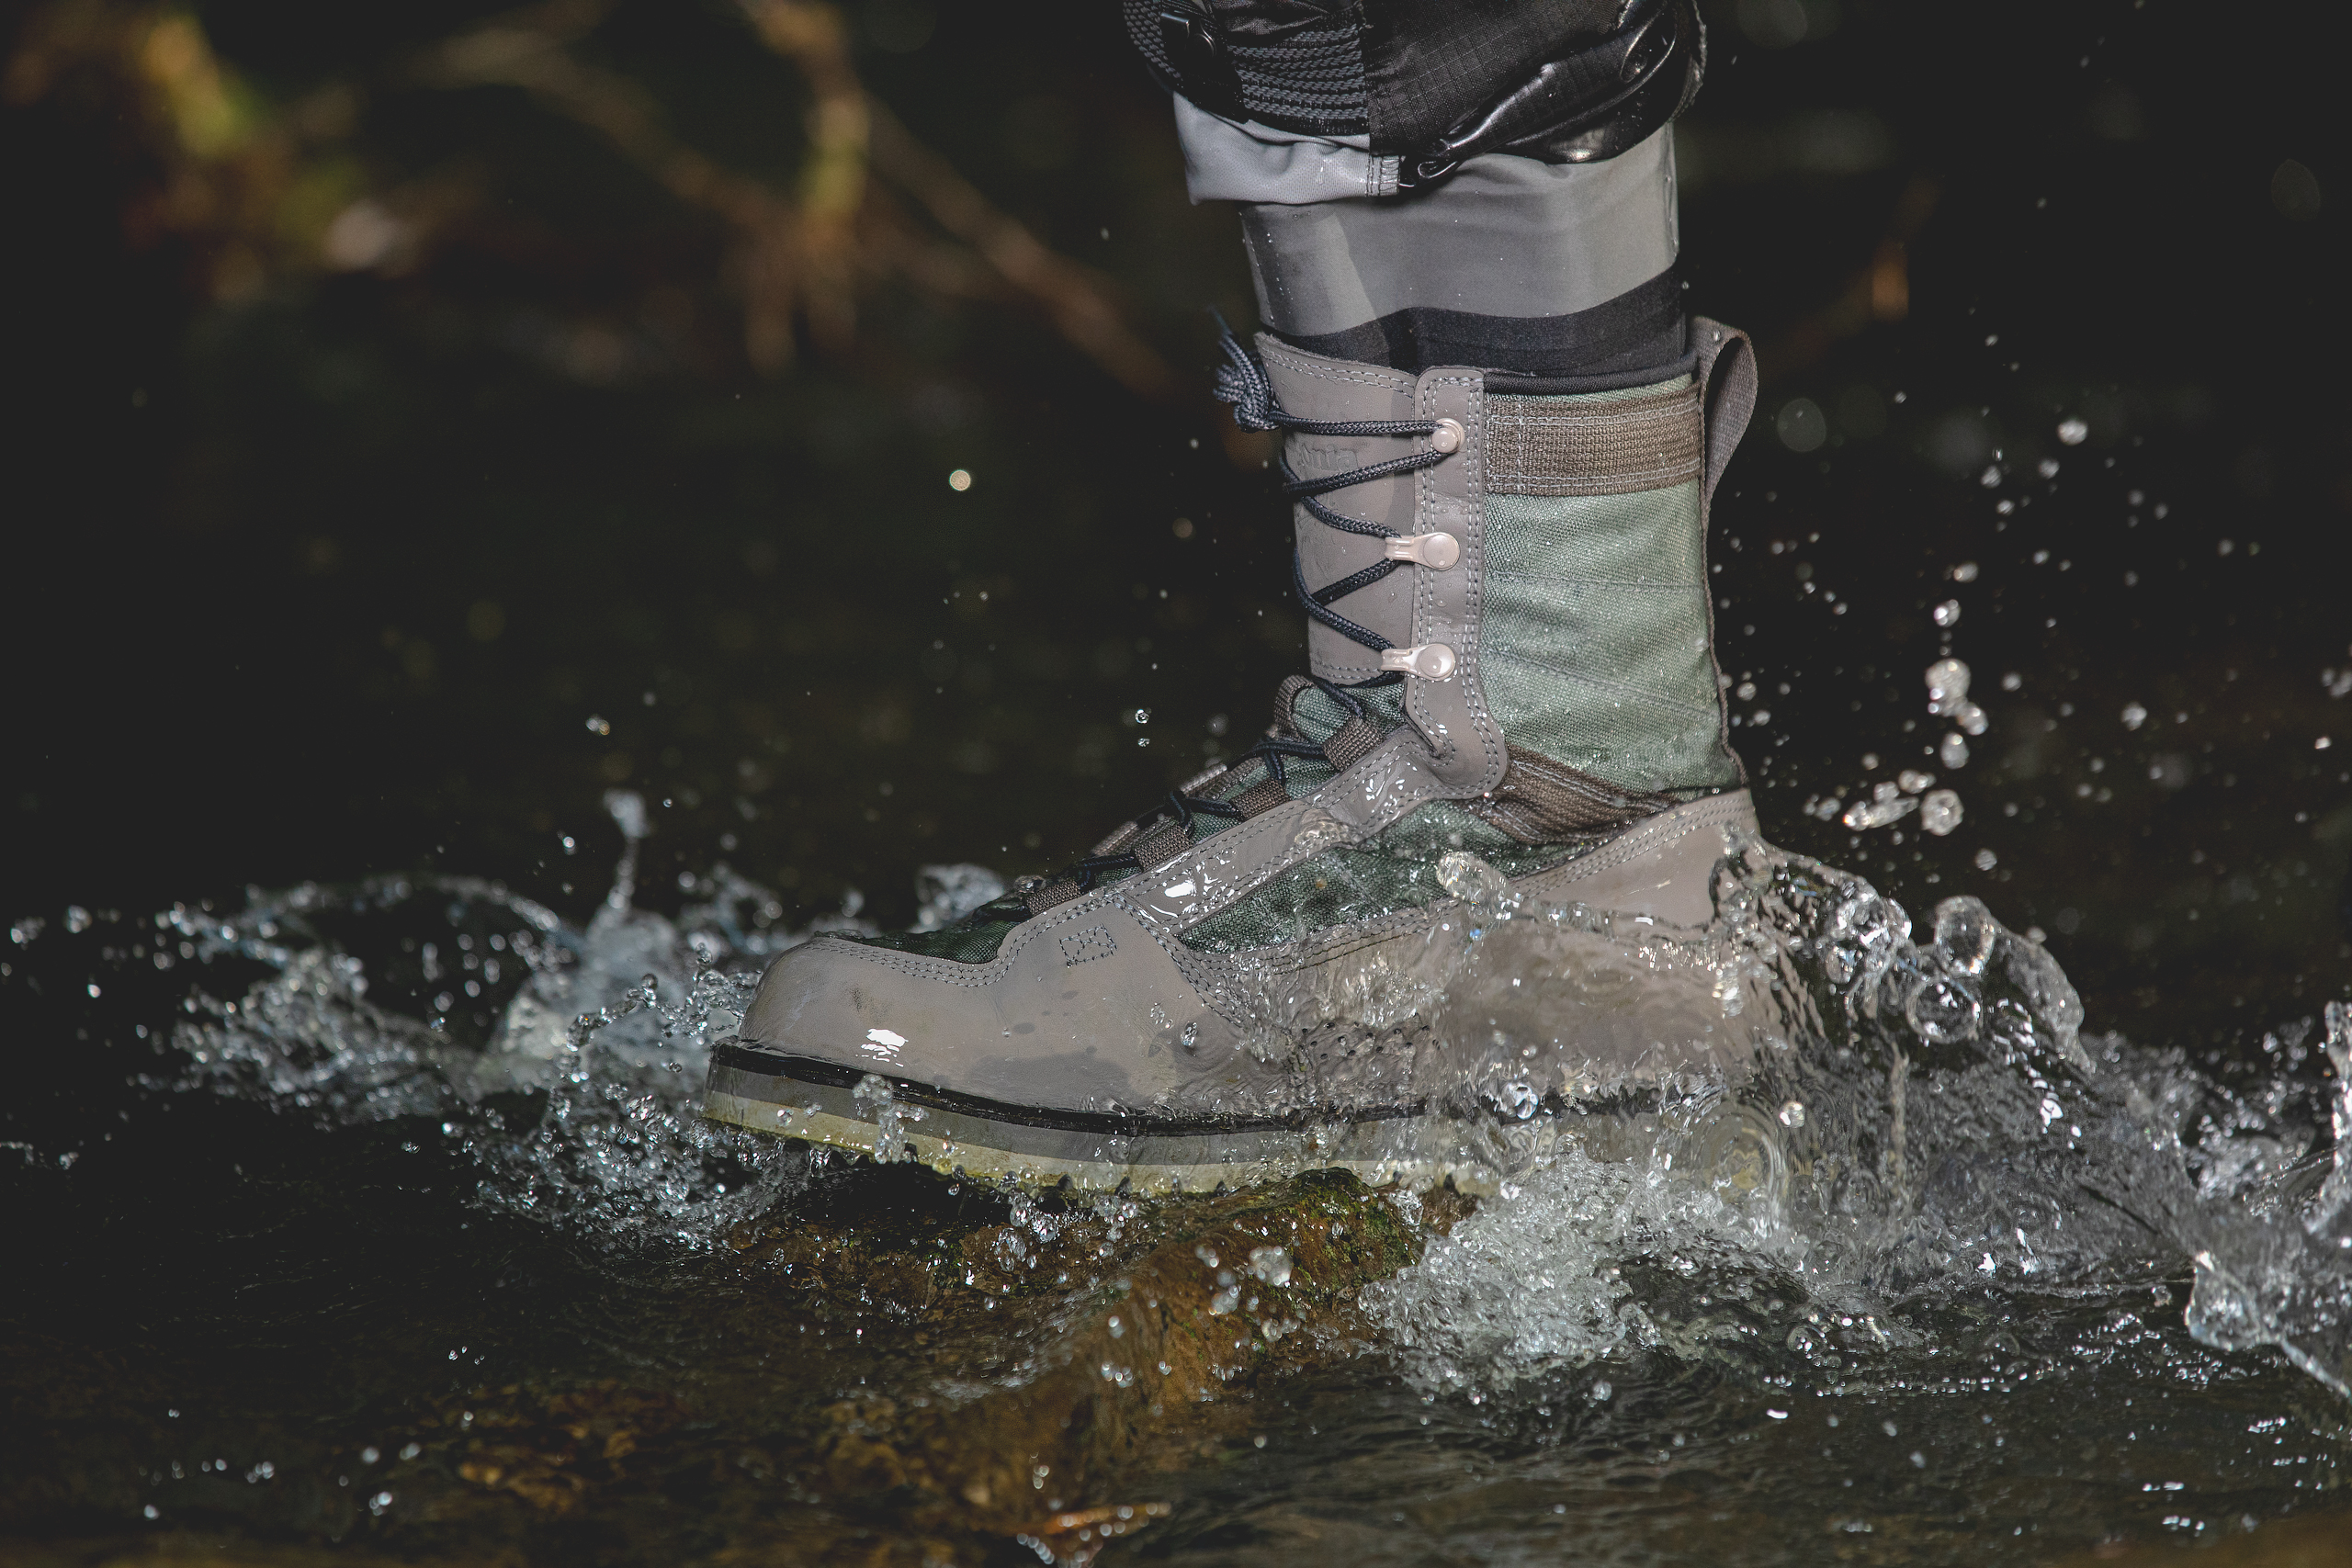 Musthave Patagonia Men's Swiftcurrent Waders & River Salt Wading Boots Built By Danner